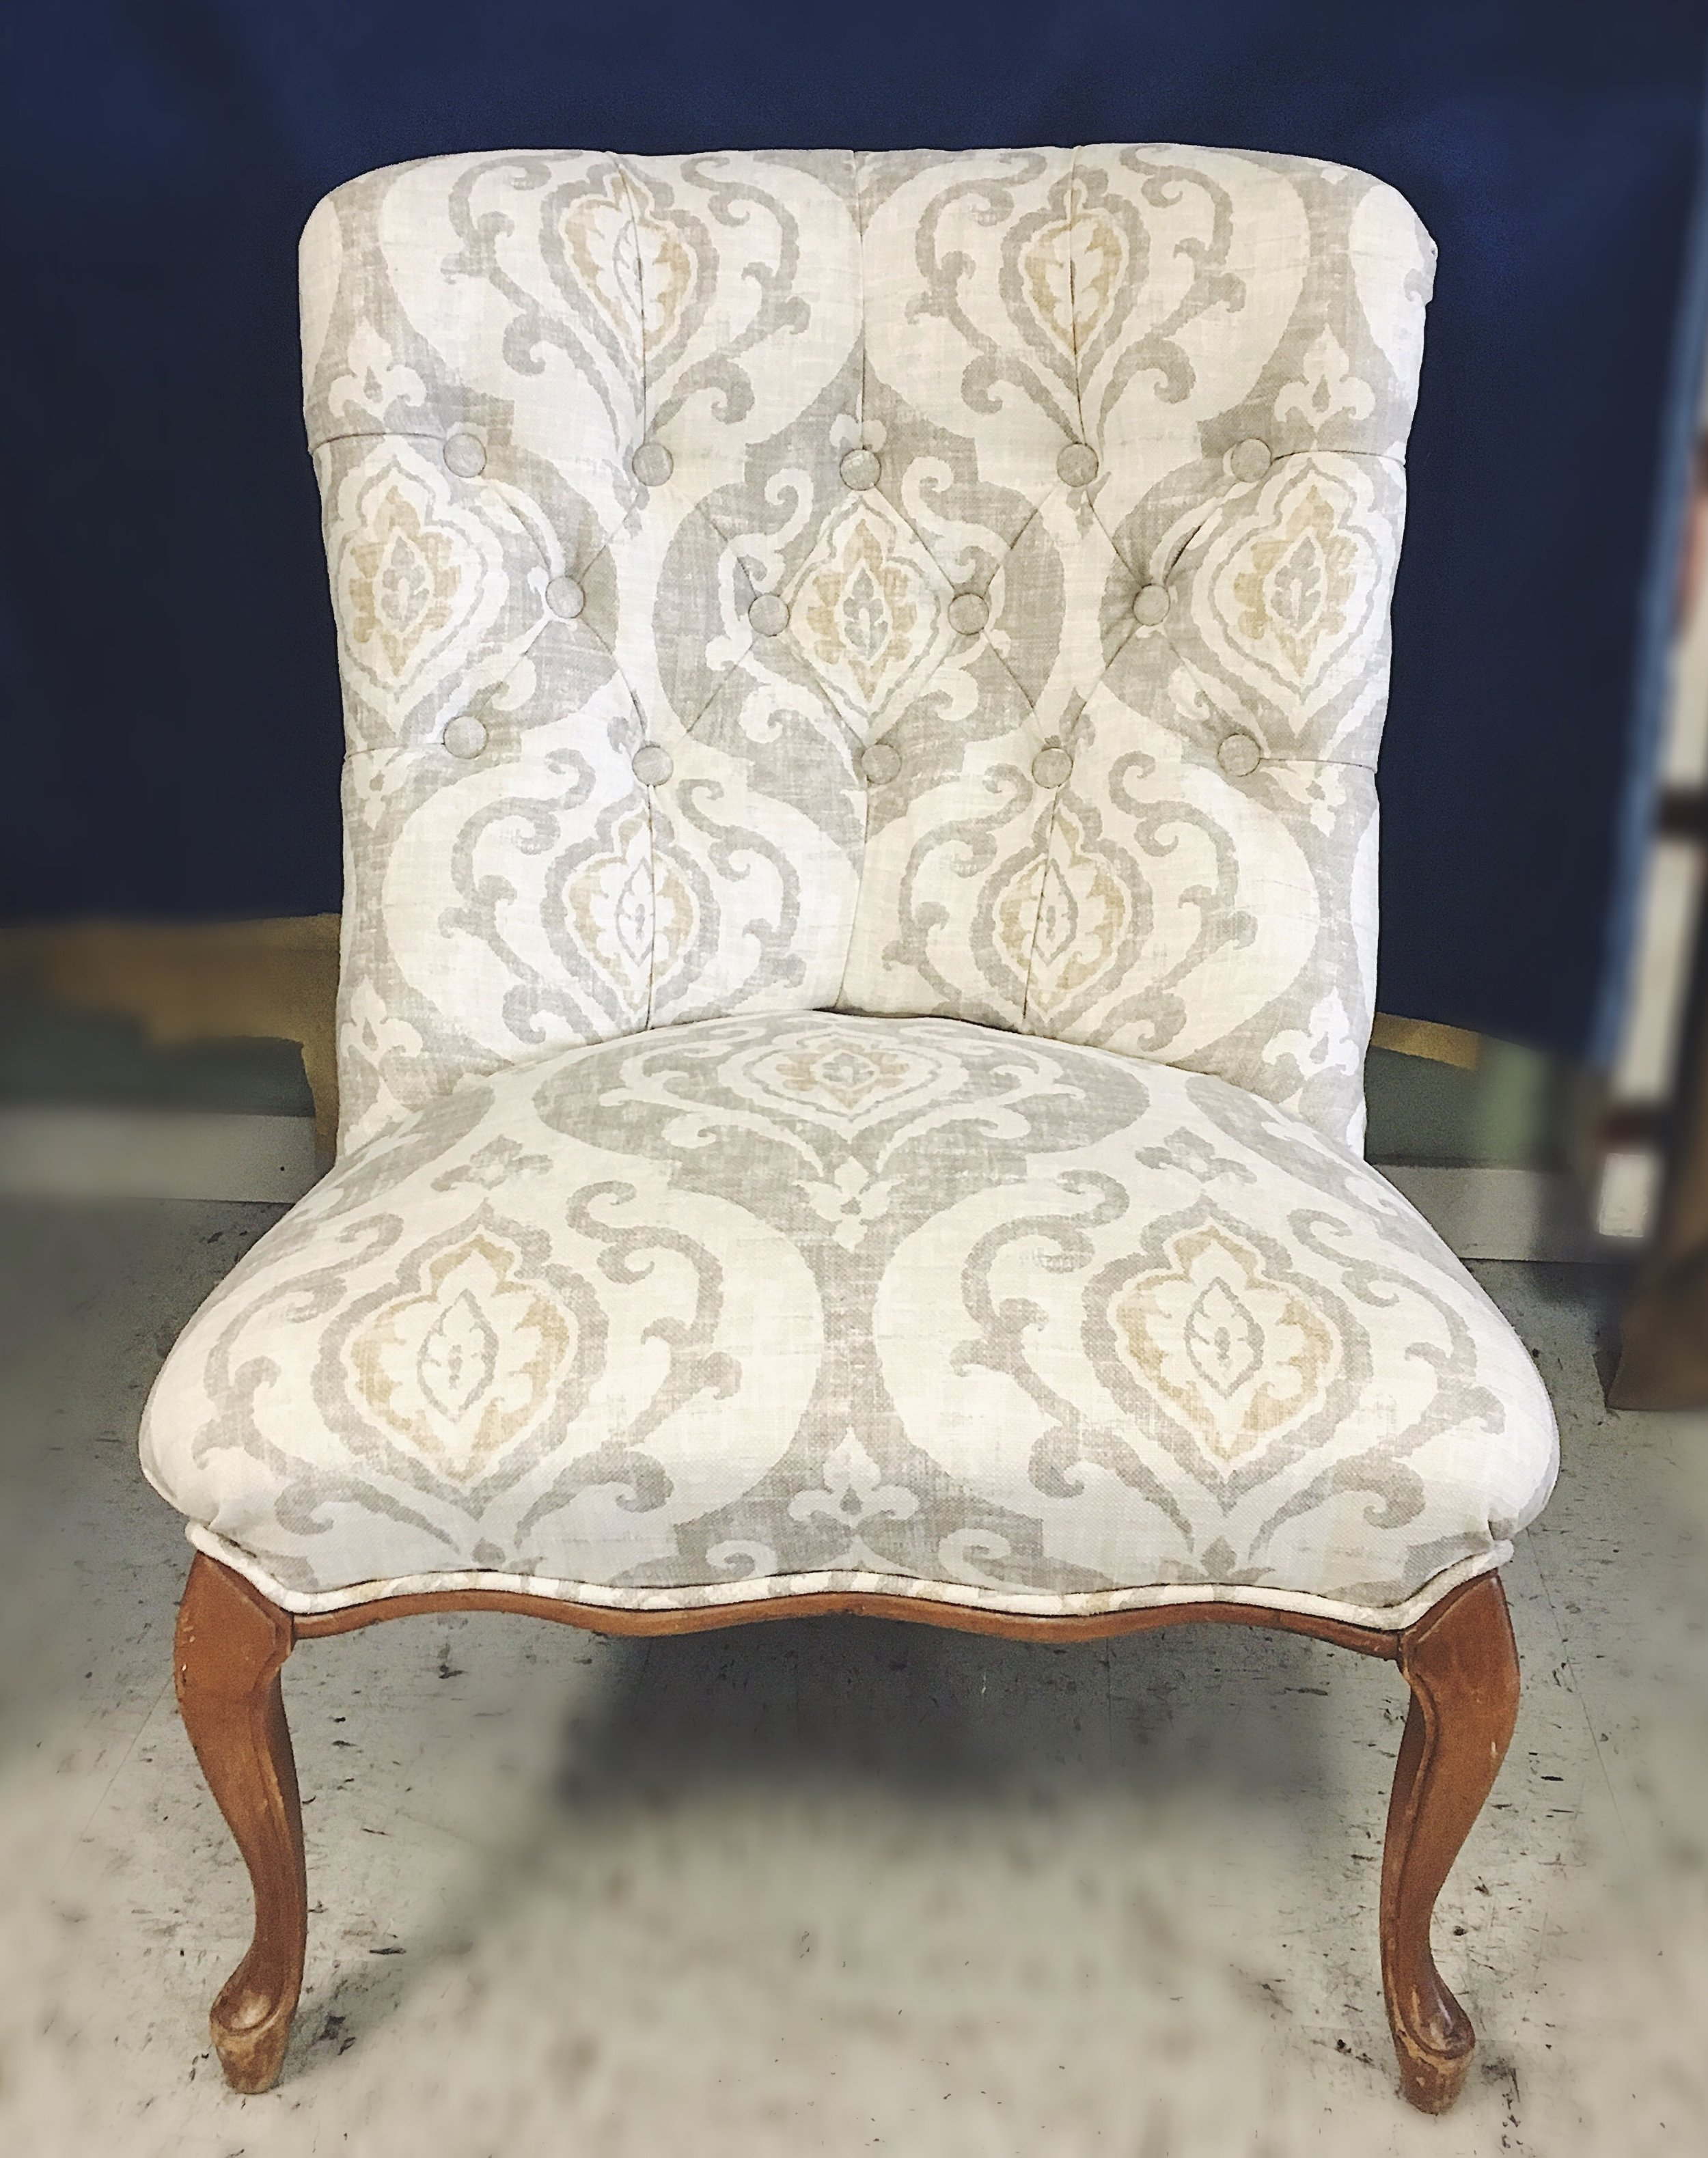 after upholstery